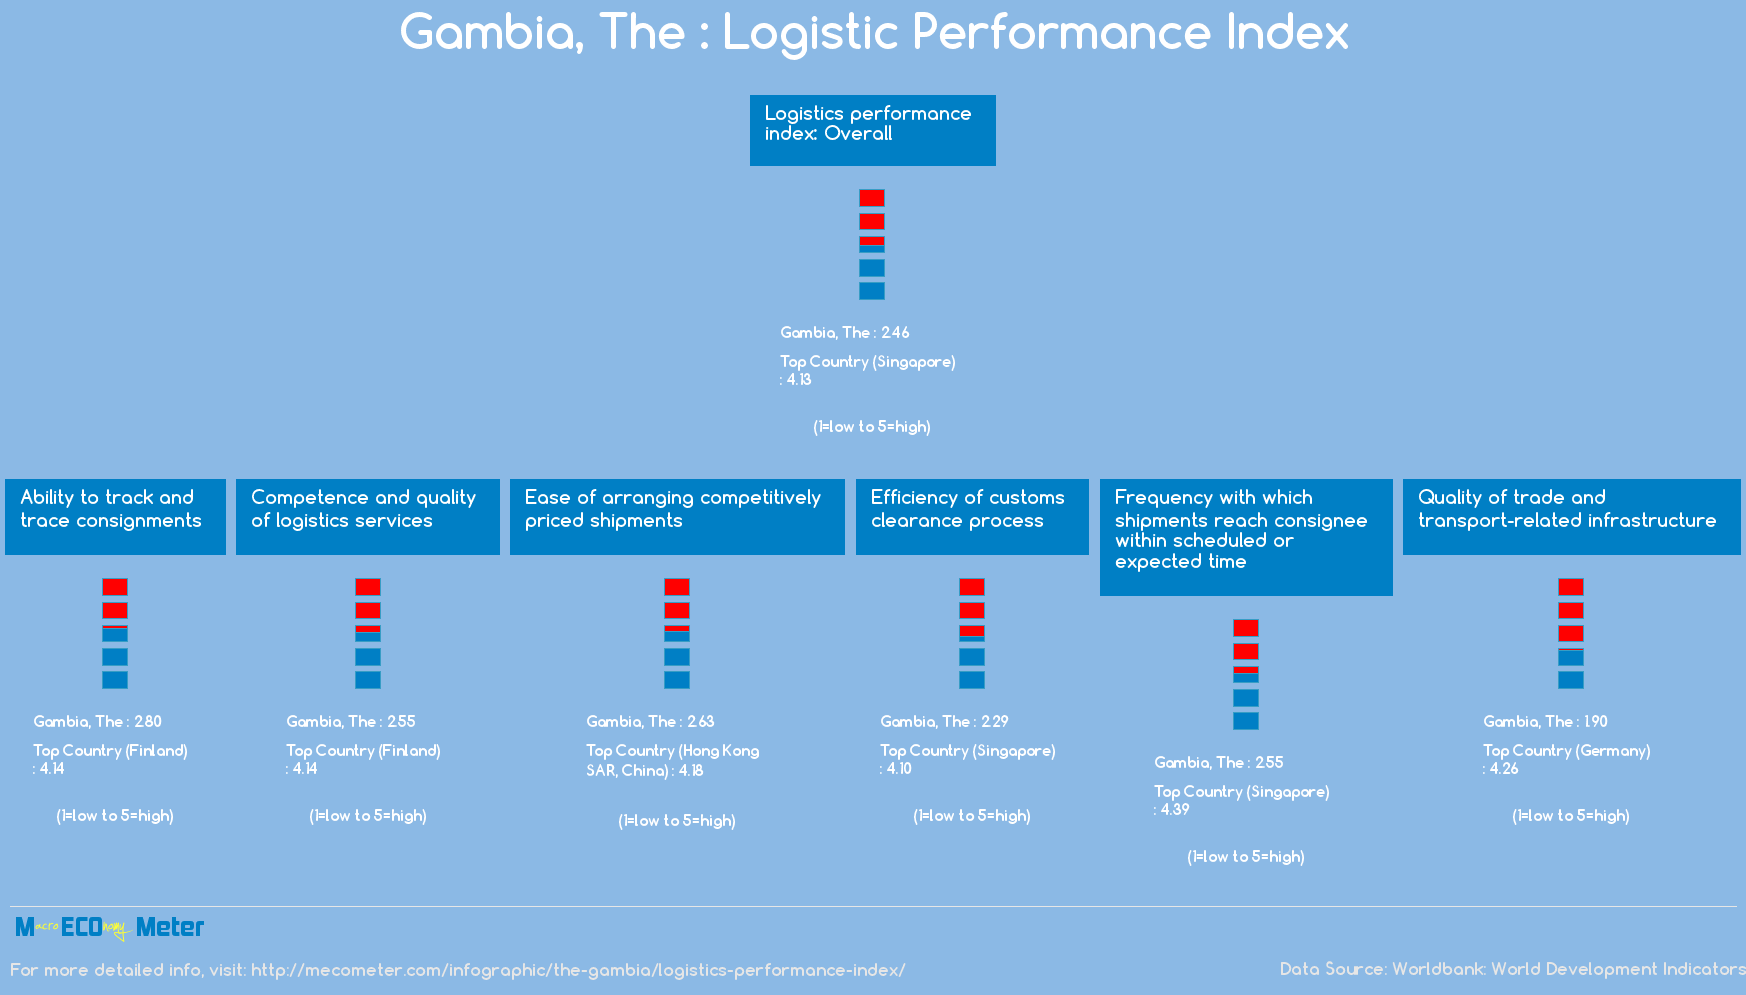 The Gambia : Logistic Performance Index